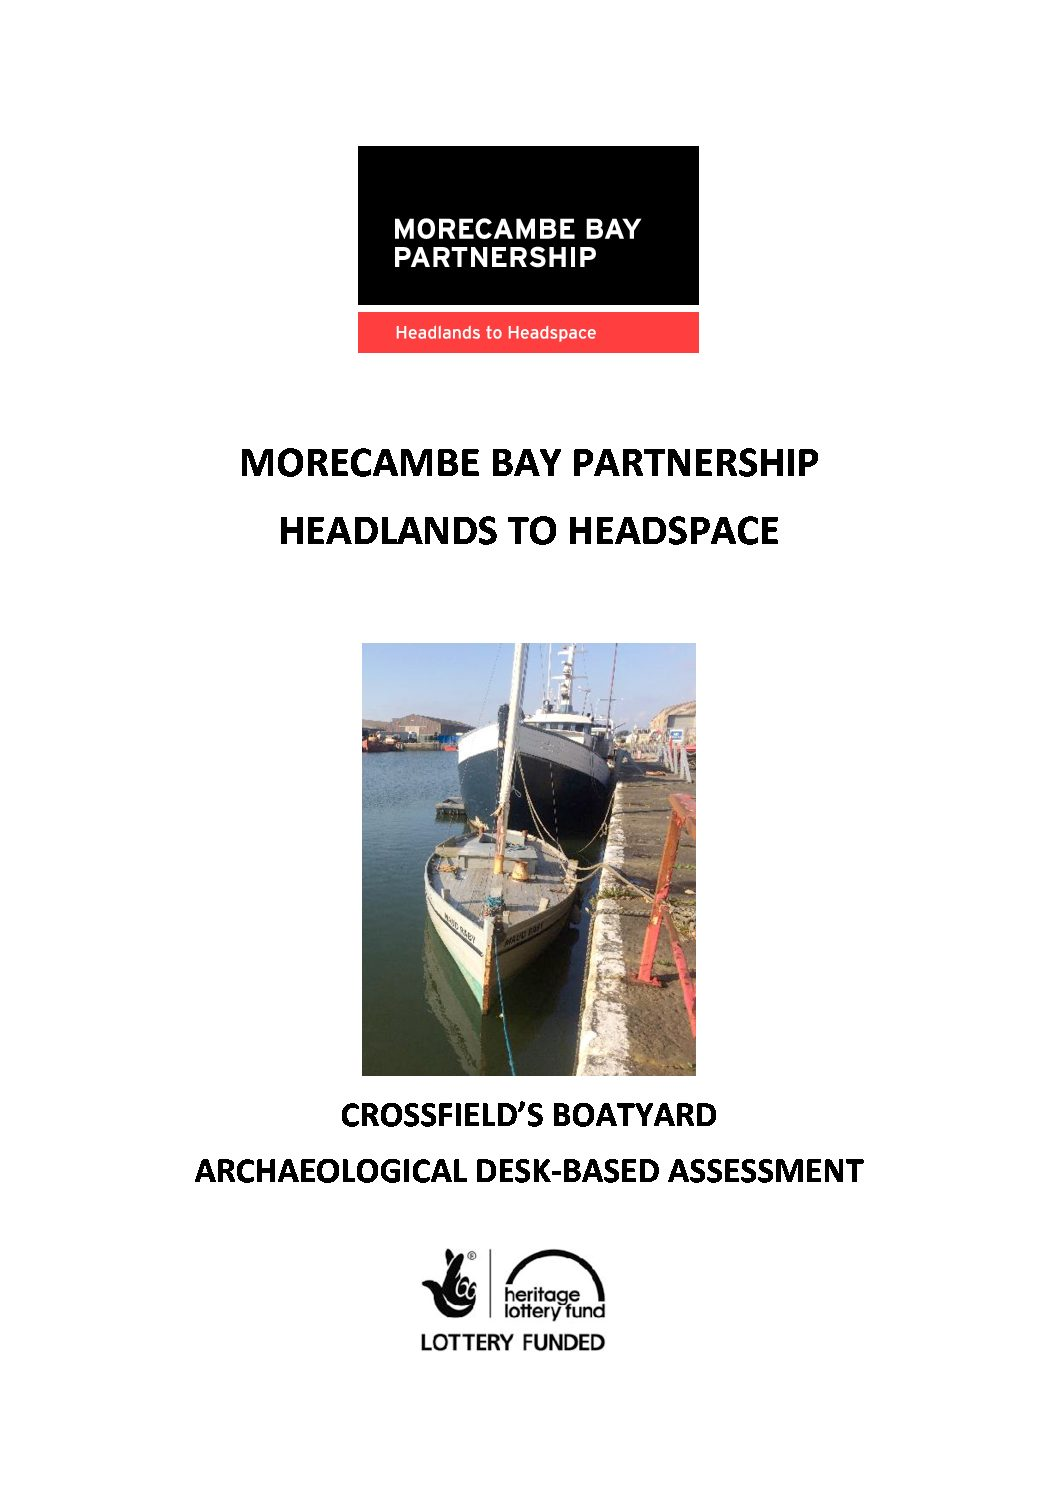 Crossfield's Boatyard Archaeological Desk-Based Assessment